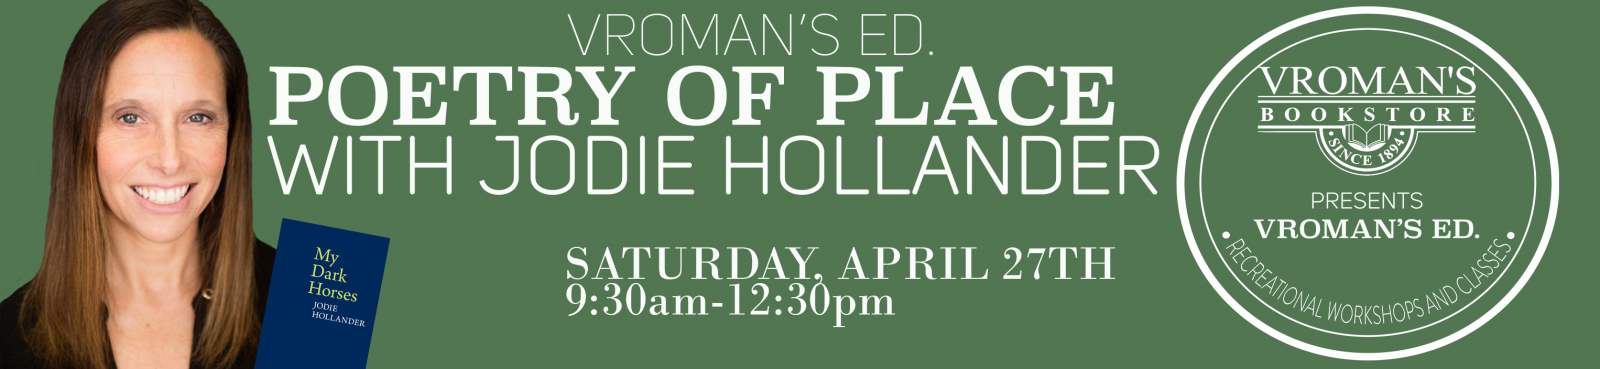 Poetry of Place Writing Workshop with Jodie Hollander